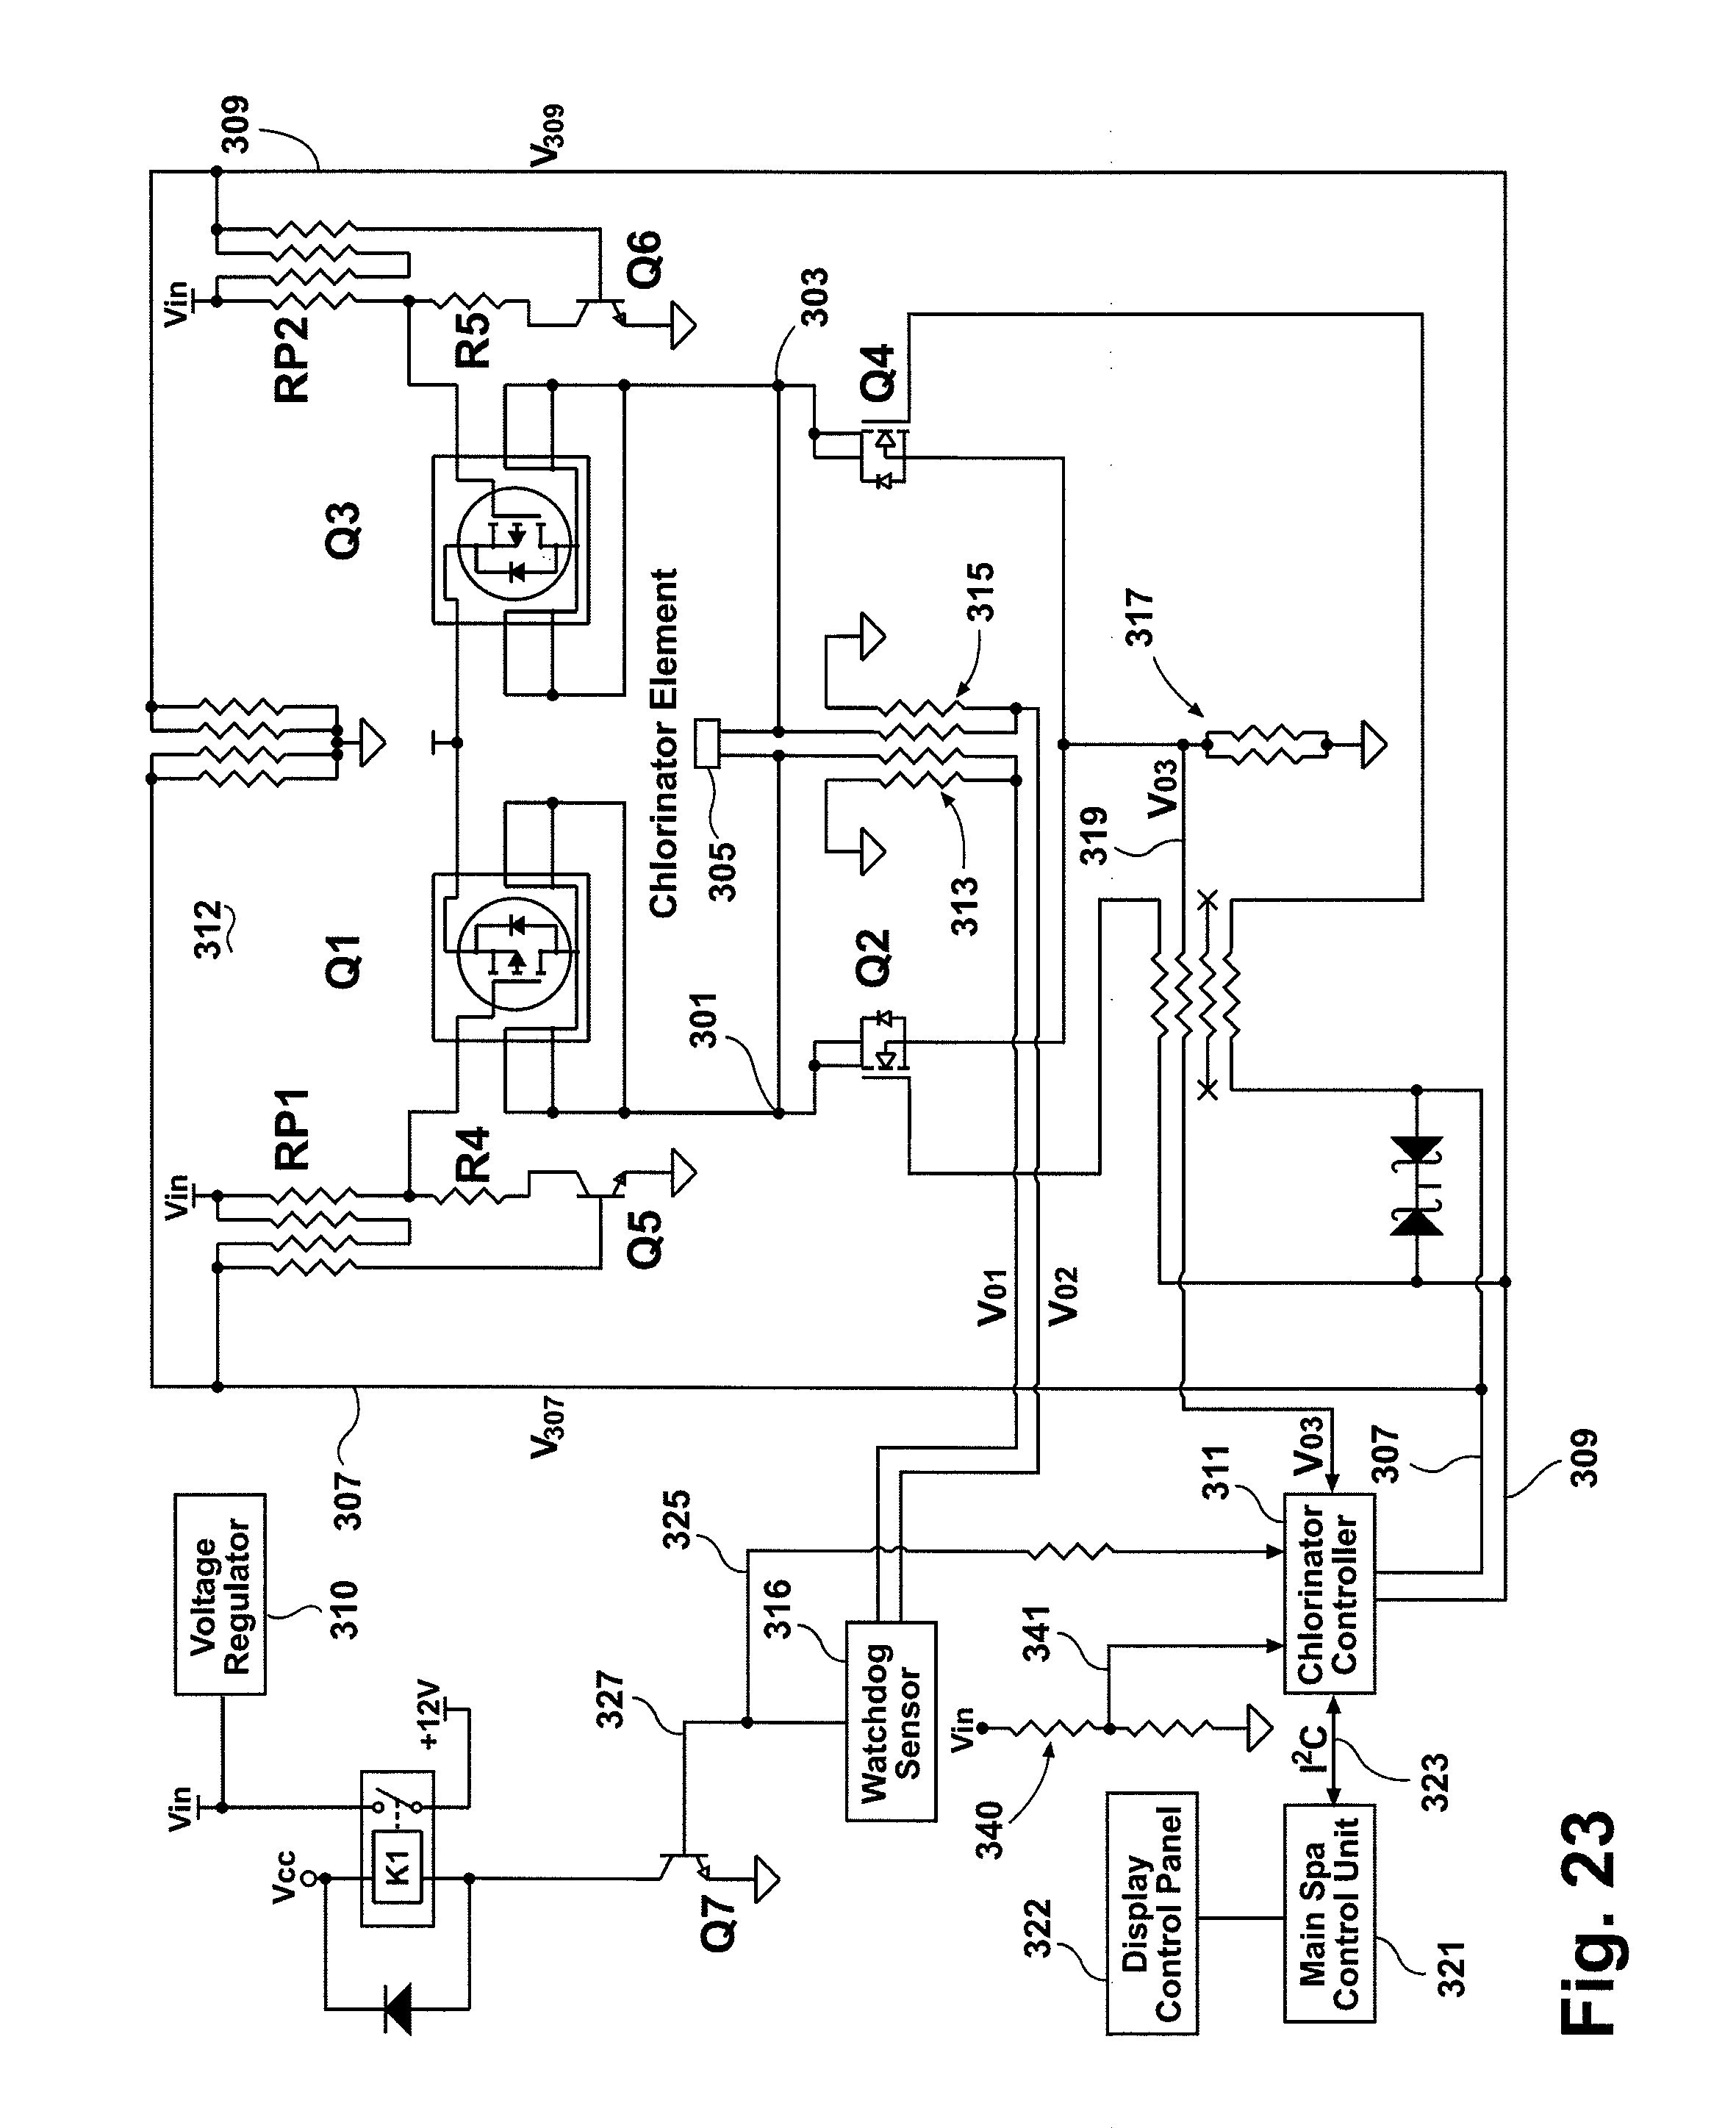 Cal Spa Wiring Diagram Gfci Wiring Diagram for Hot Tub Fresh Hot Tub Wiring Diagram Lovely Of Cal Spa Wiring Diagram